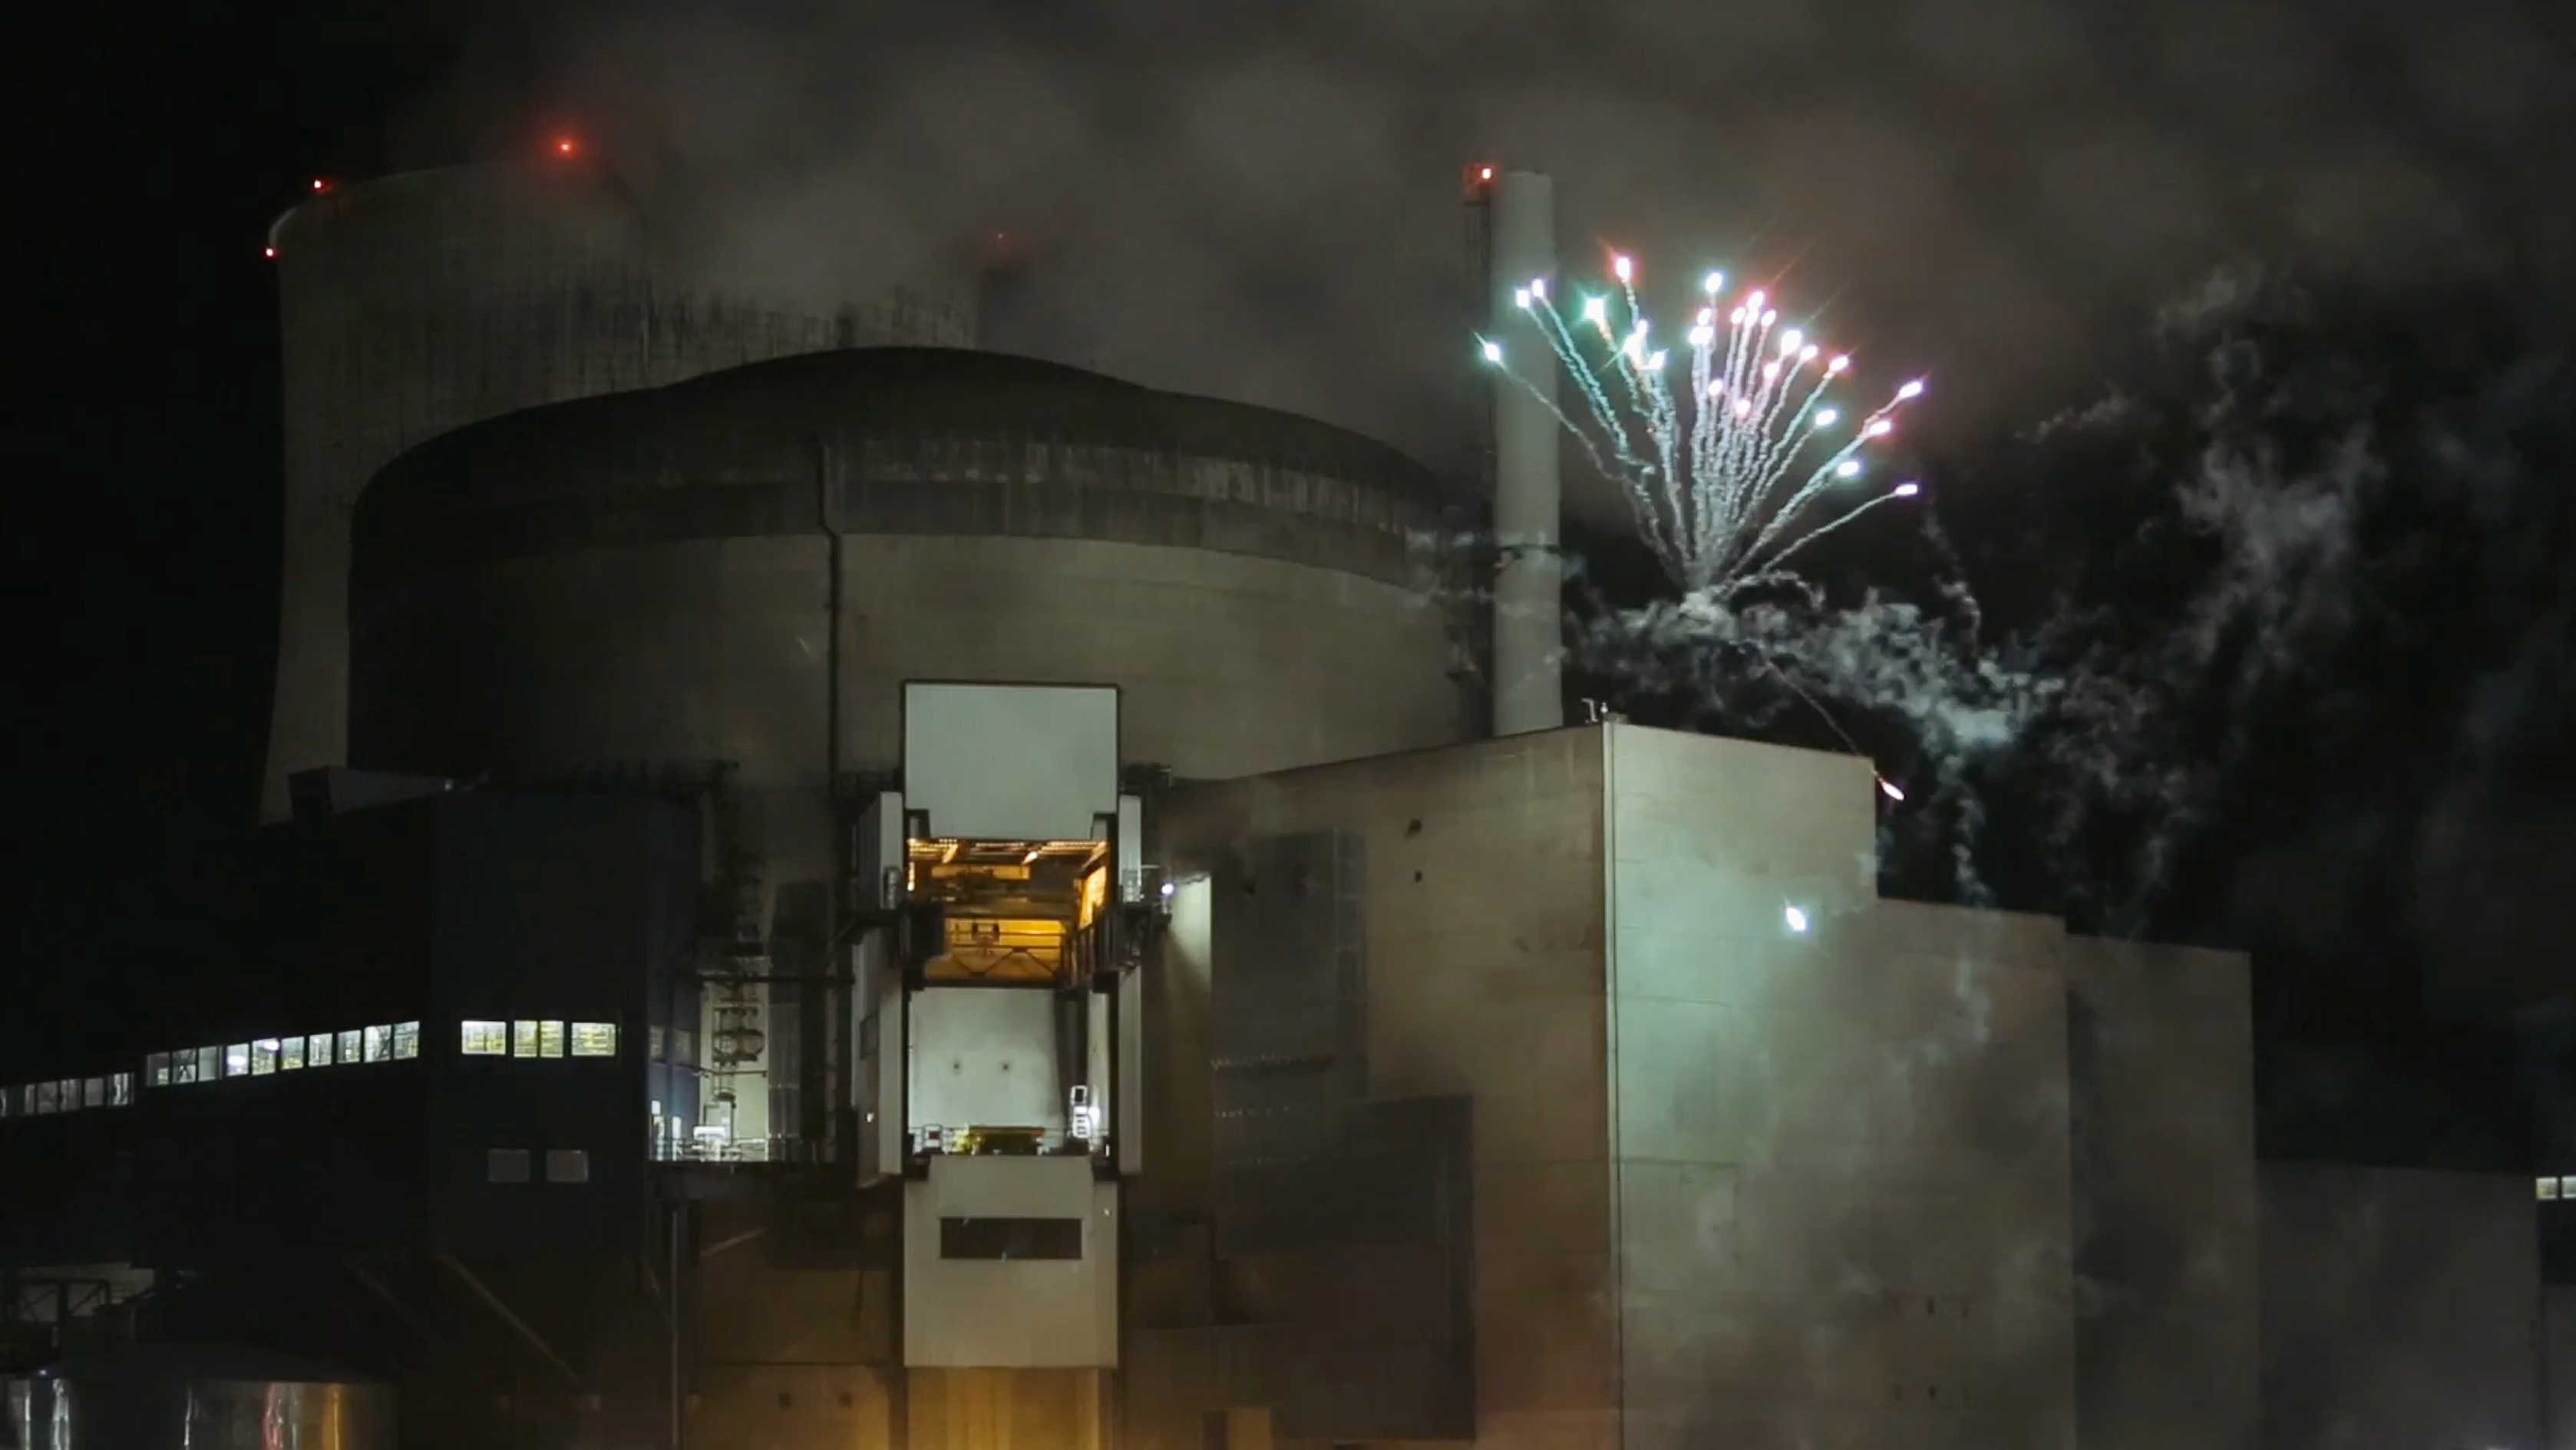 France Nuclear-1 In this photo provided by Greenpeace France and dated Thursday, Oct. 12, 2017, Greenpeace activists set off fireworks inside the nuclear power plant of Cattenom, eastern France. Eight environmental activists are in custody after breaking into a French nuclear power station and setting off fireworks, in a bid to urge better protection for nuclear waste and protest France's dependence on atomic energy. (Greenpeace via AP)